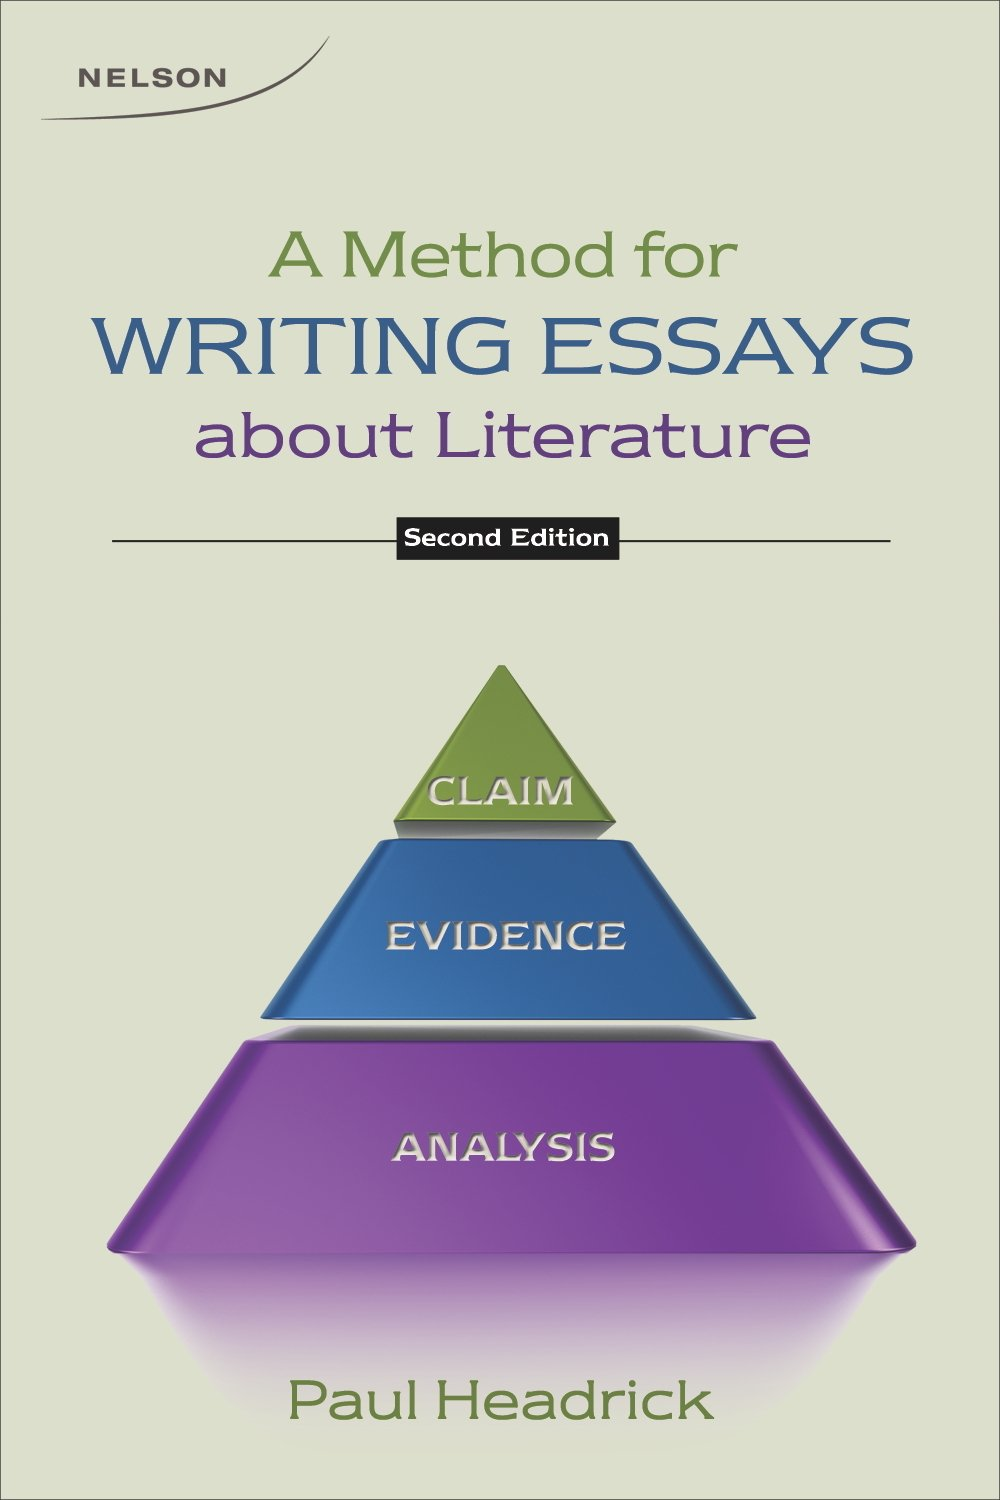 method for writing essays about literature  method for writing essays about literature 9780176508609 com books